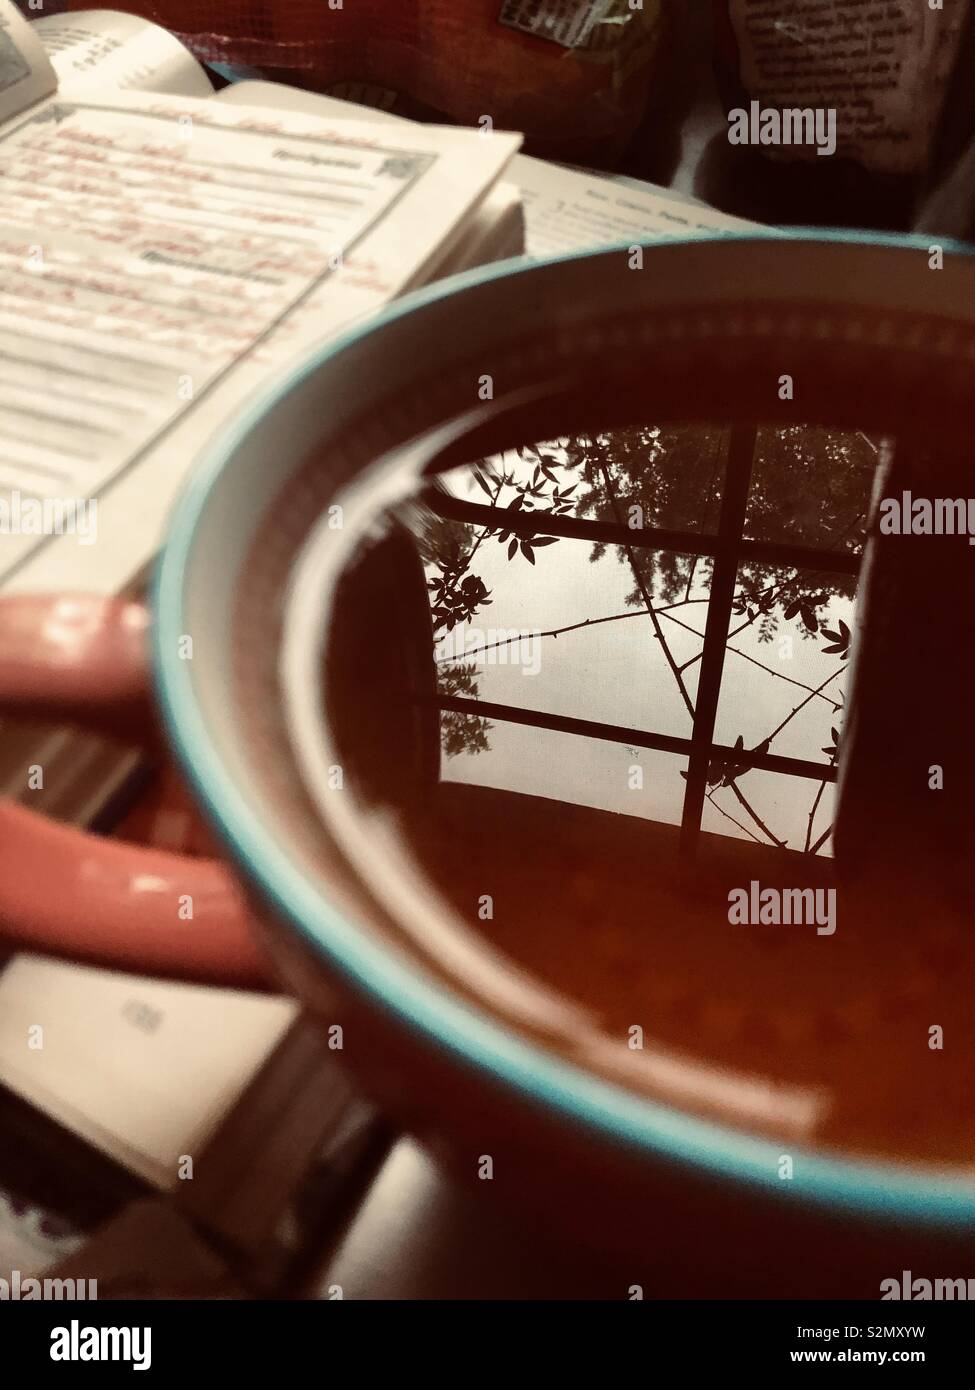 Close up of a cup of black tea with a window reflection, and a hand written notes in a notebook in the background Stock Photo